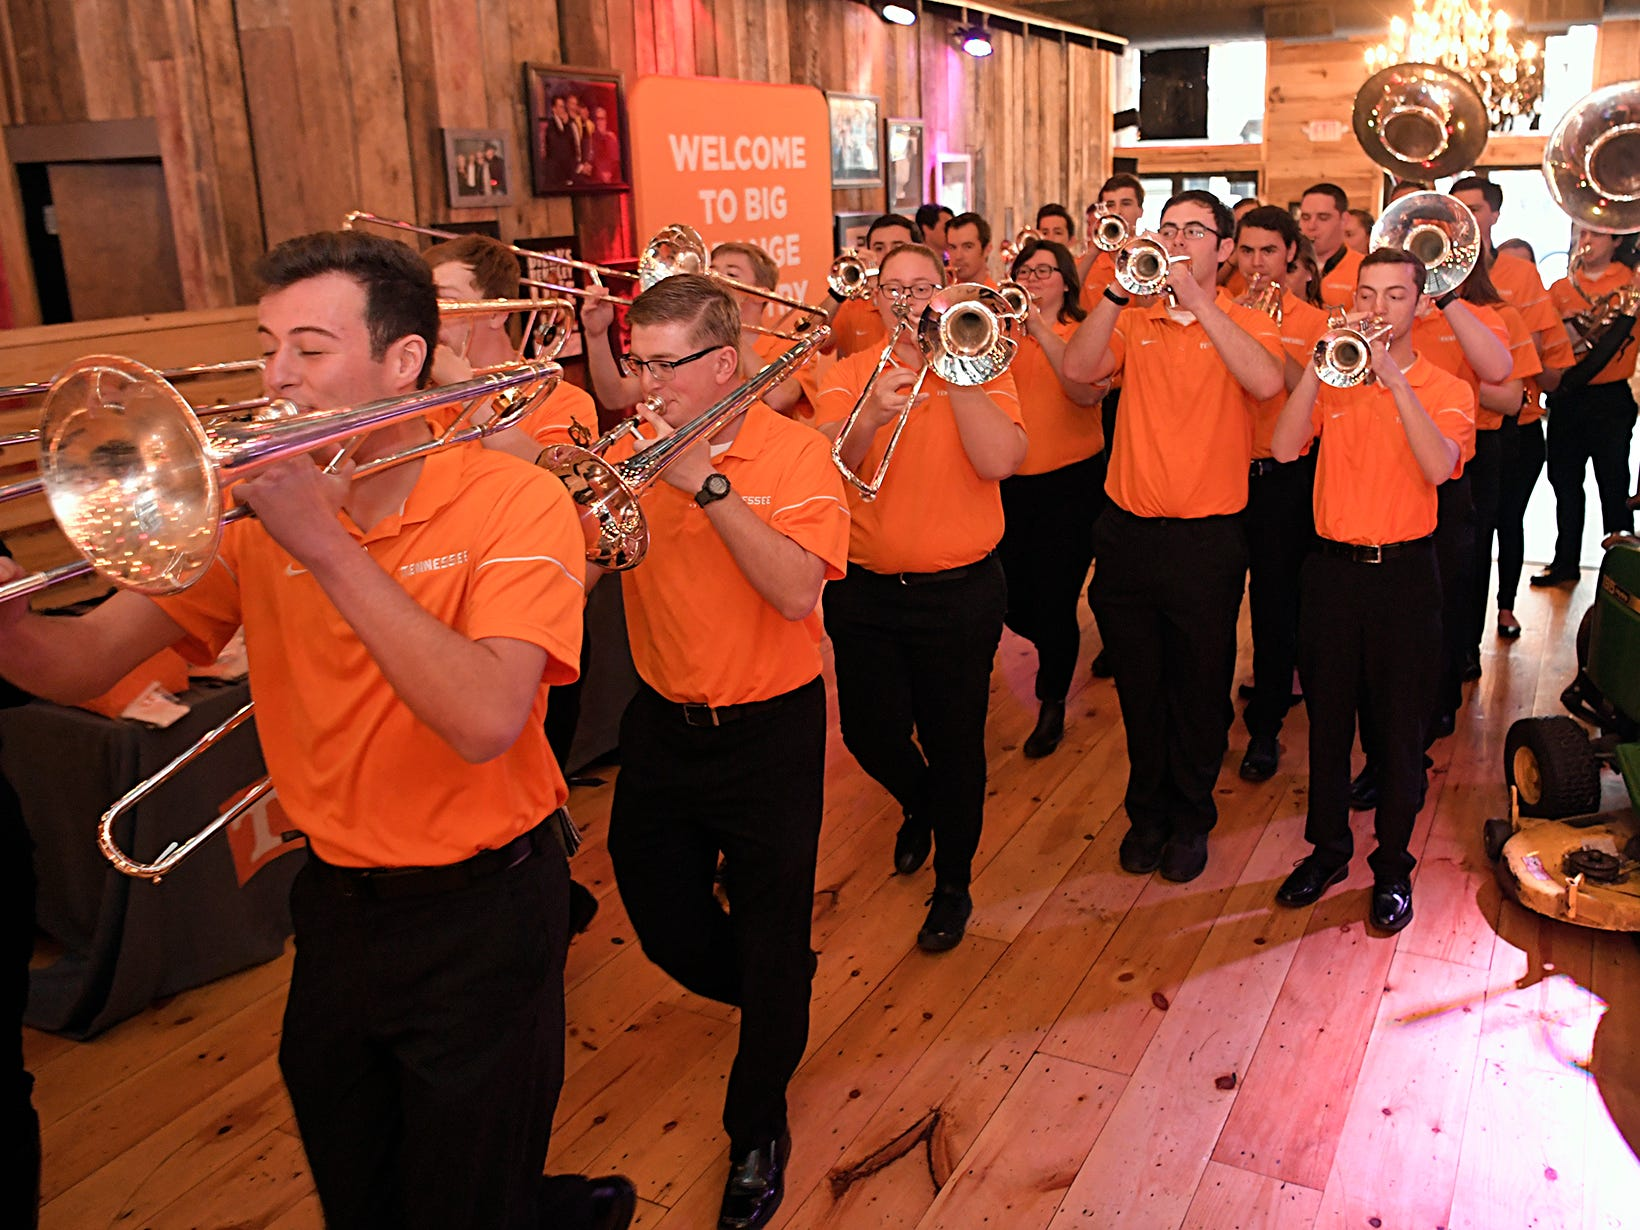 The University of Tennessee pep band marches into the George Jones Rooftop Bar during a fan pep rally during the SEC Men's Basketball Tournament in Nashville on Friday, March 15, 2019.